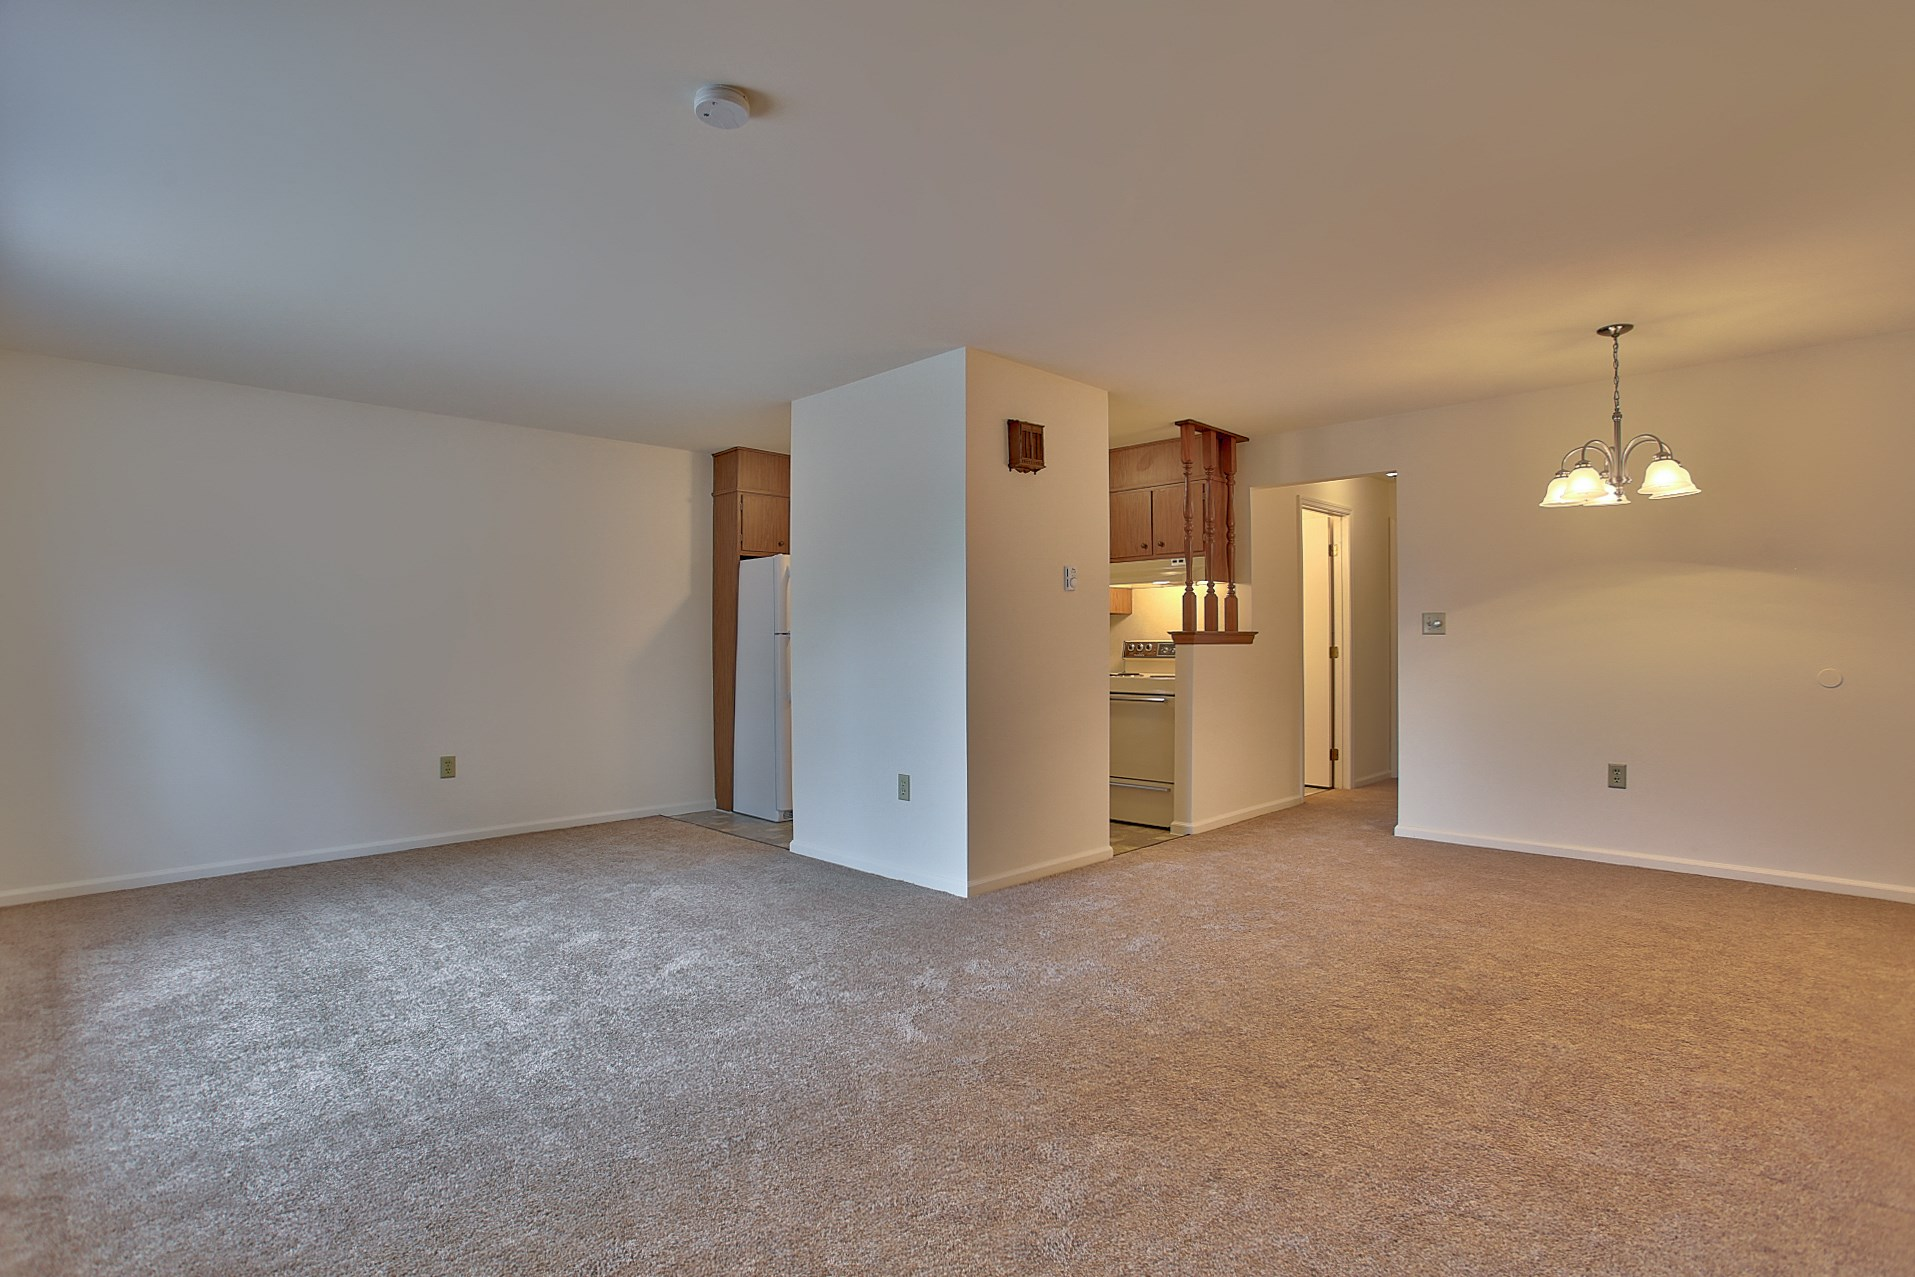 Rent An Apartment In Lancaster Pa Colonial Apartments Ebrochure